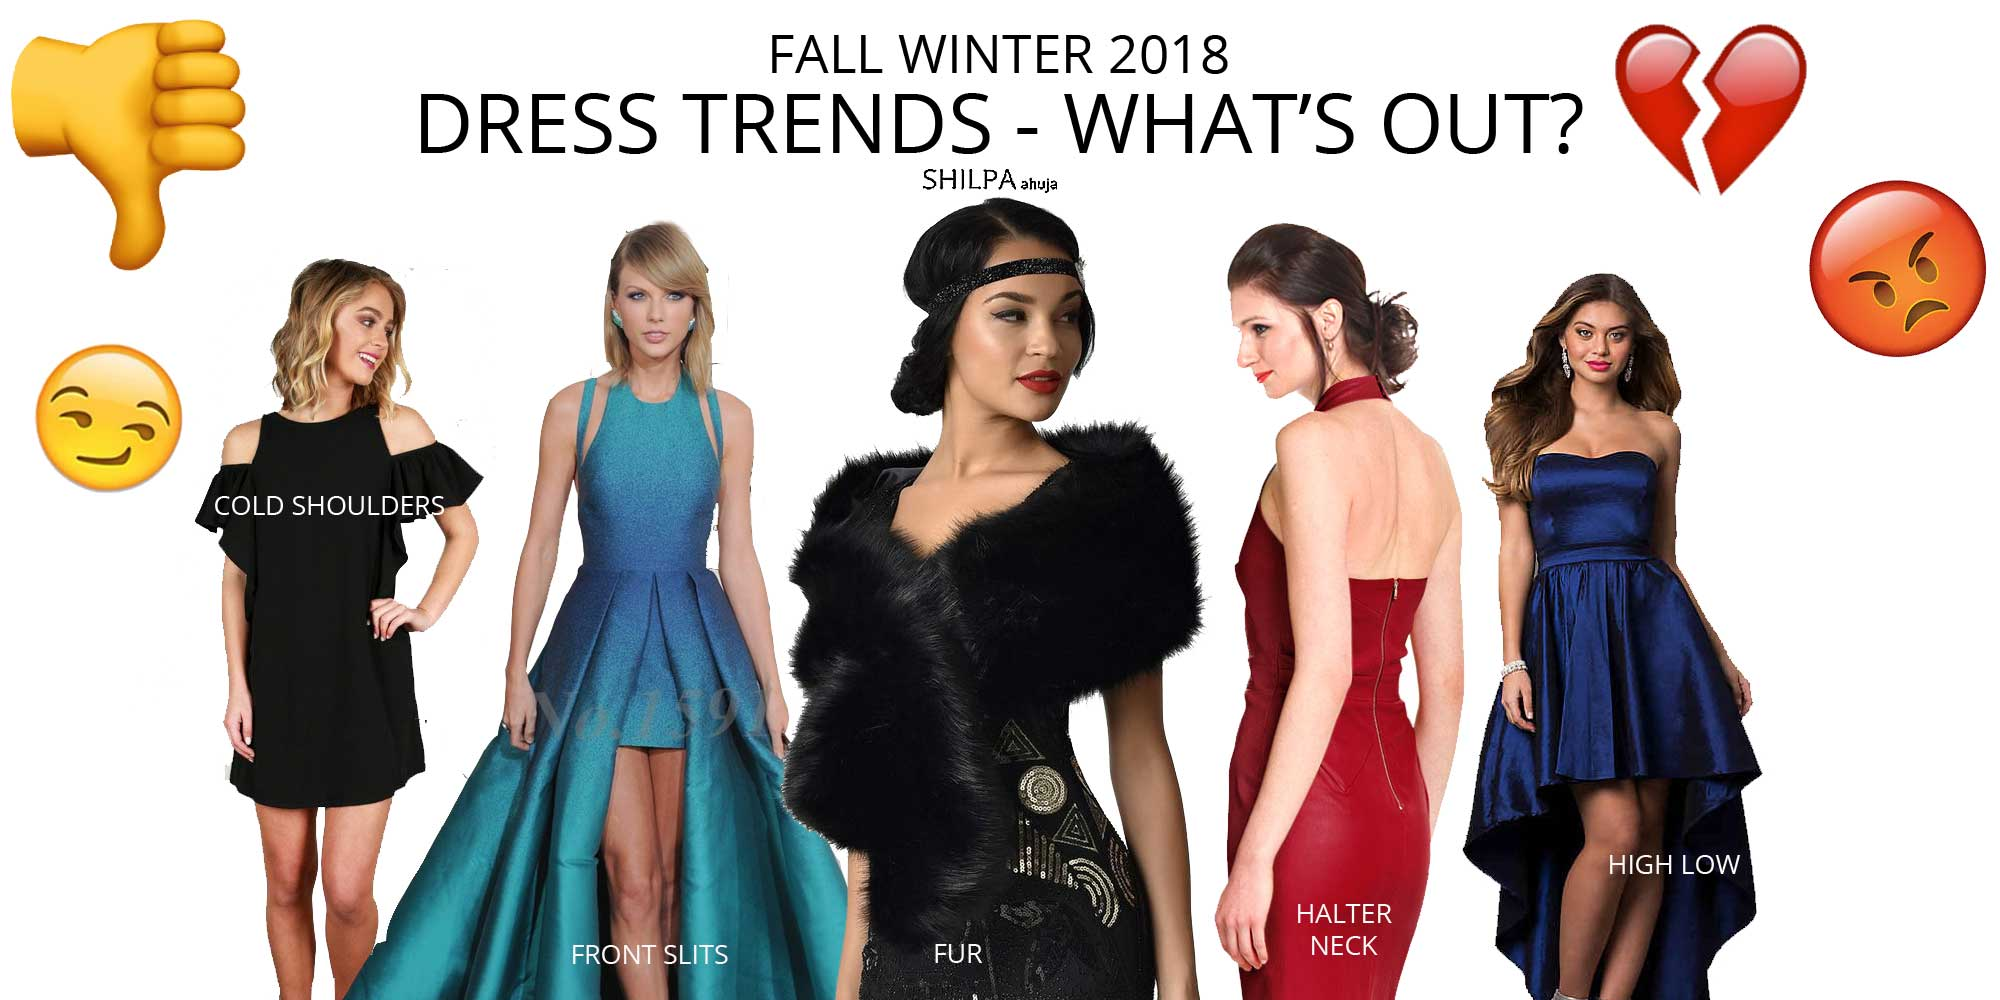 dress-trends-whats-out-fall-winter-2018-fw18-cold-shoulders-frontslit